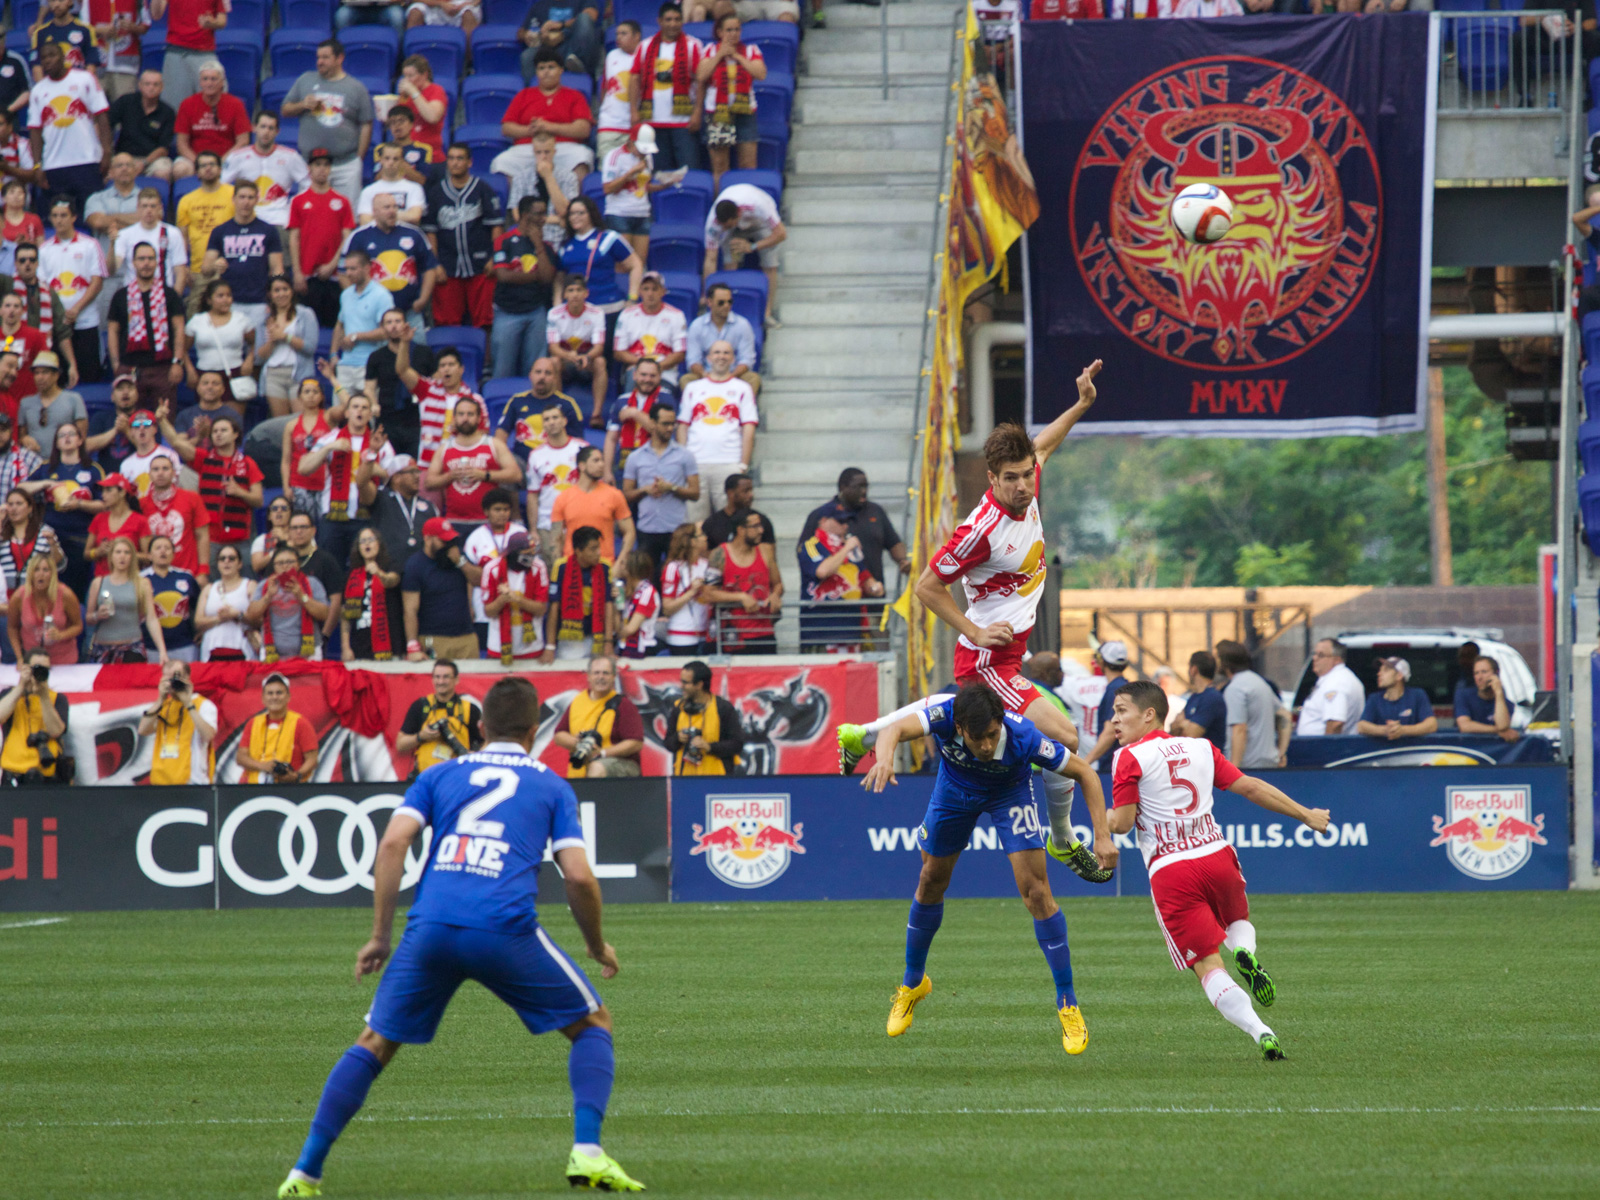 New York Red Bulls defender Damien Perrinelle (55) and New York Cosmos midfielder Walter Restrepo (20) collide while vying for the ball in the first half of the 2015 U.S. Open Cup fifth-round match at Red Bull Arena.